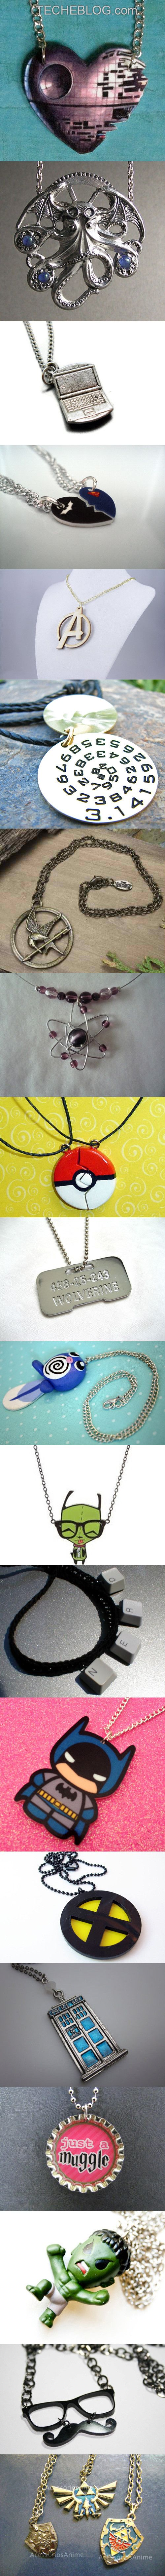 A collection of 20 cool and creative necklaces for geeks.,,